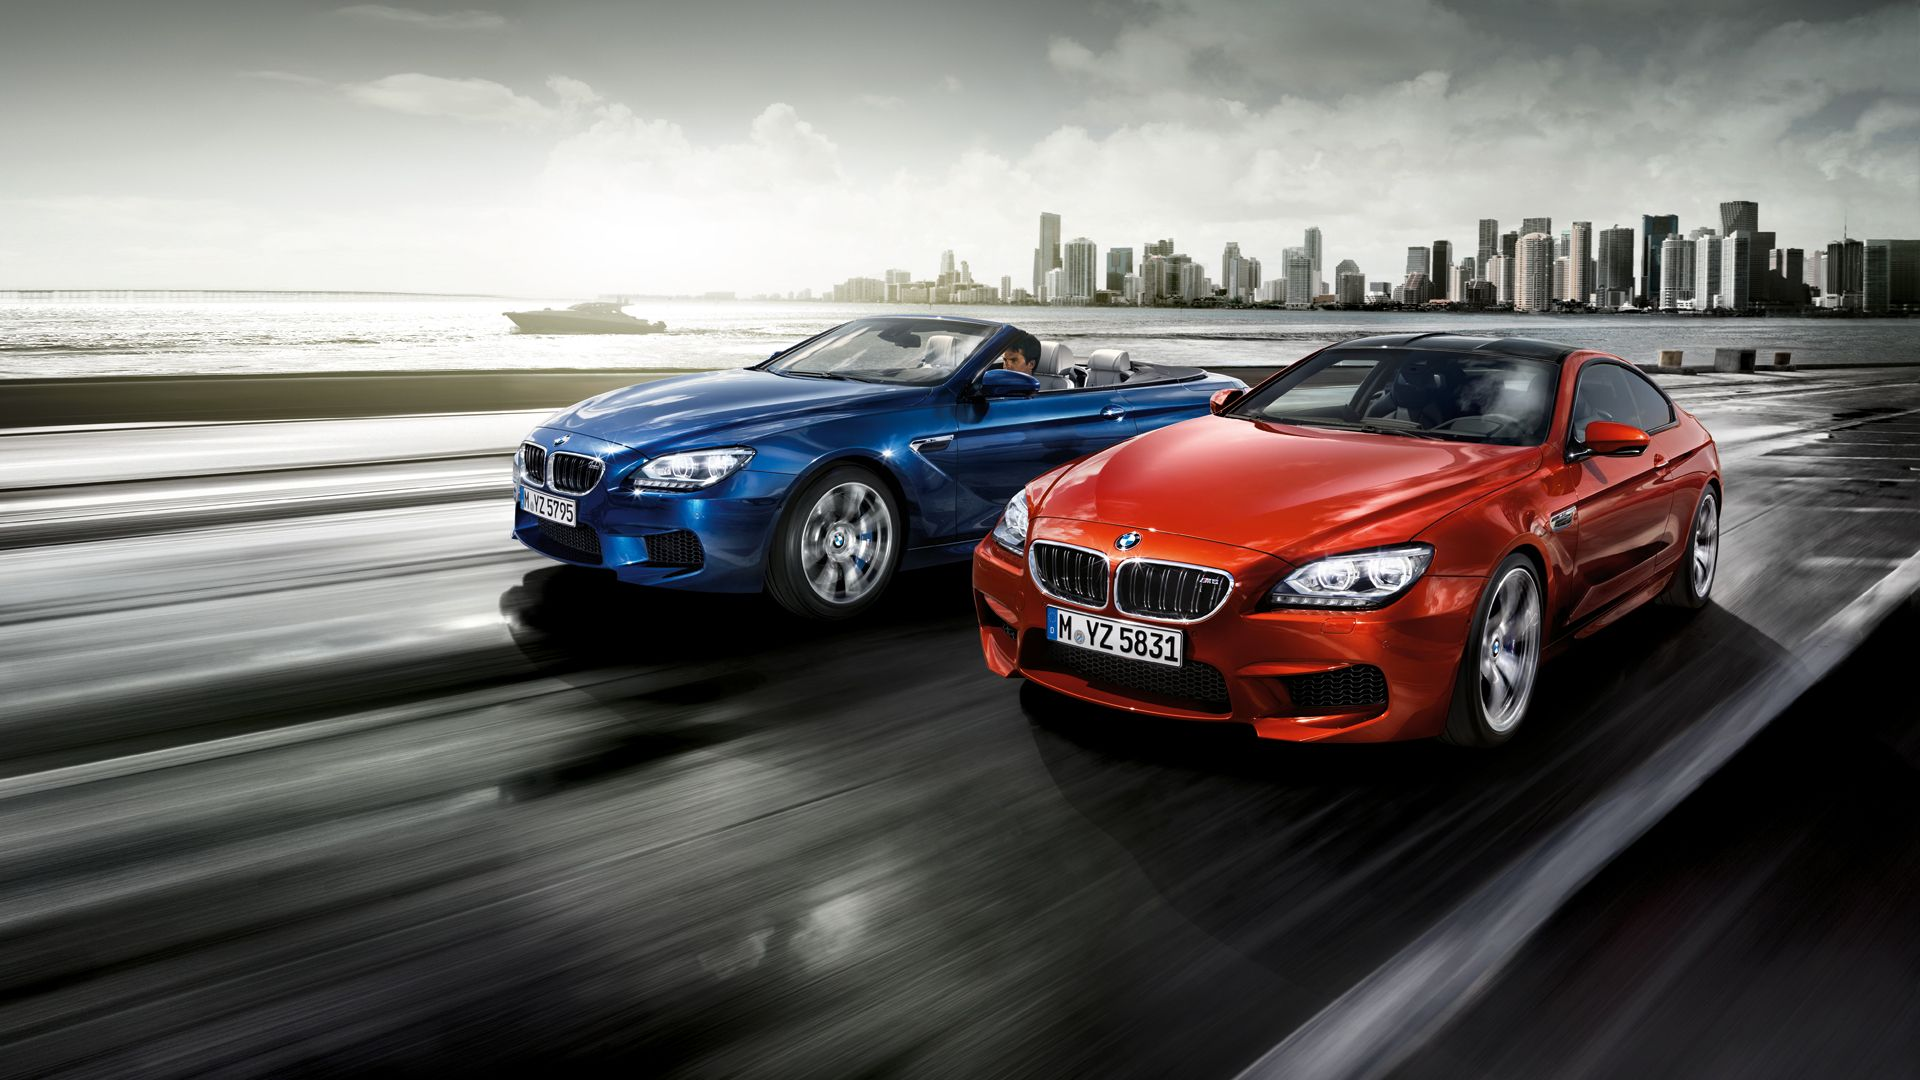 Wallpapers New Bmw M6 Coupe And Convertible Bmw M6 Bmw